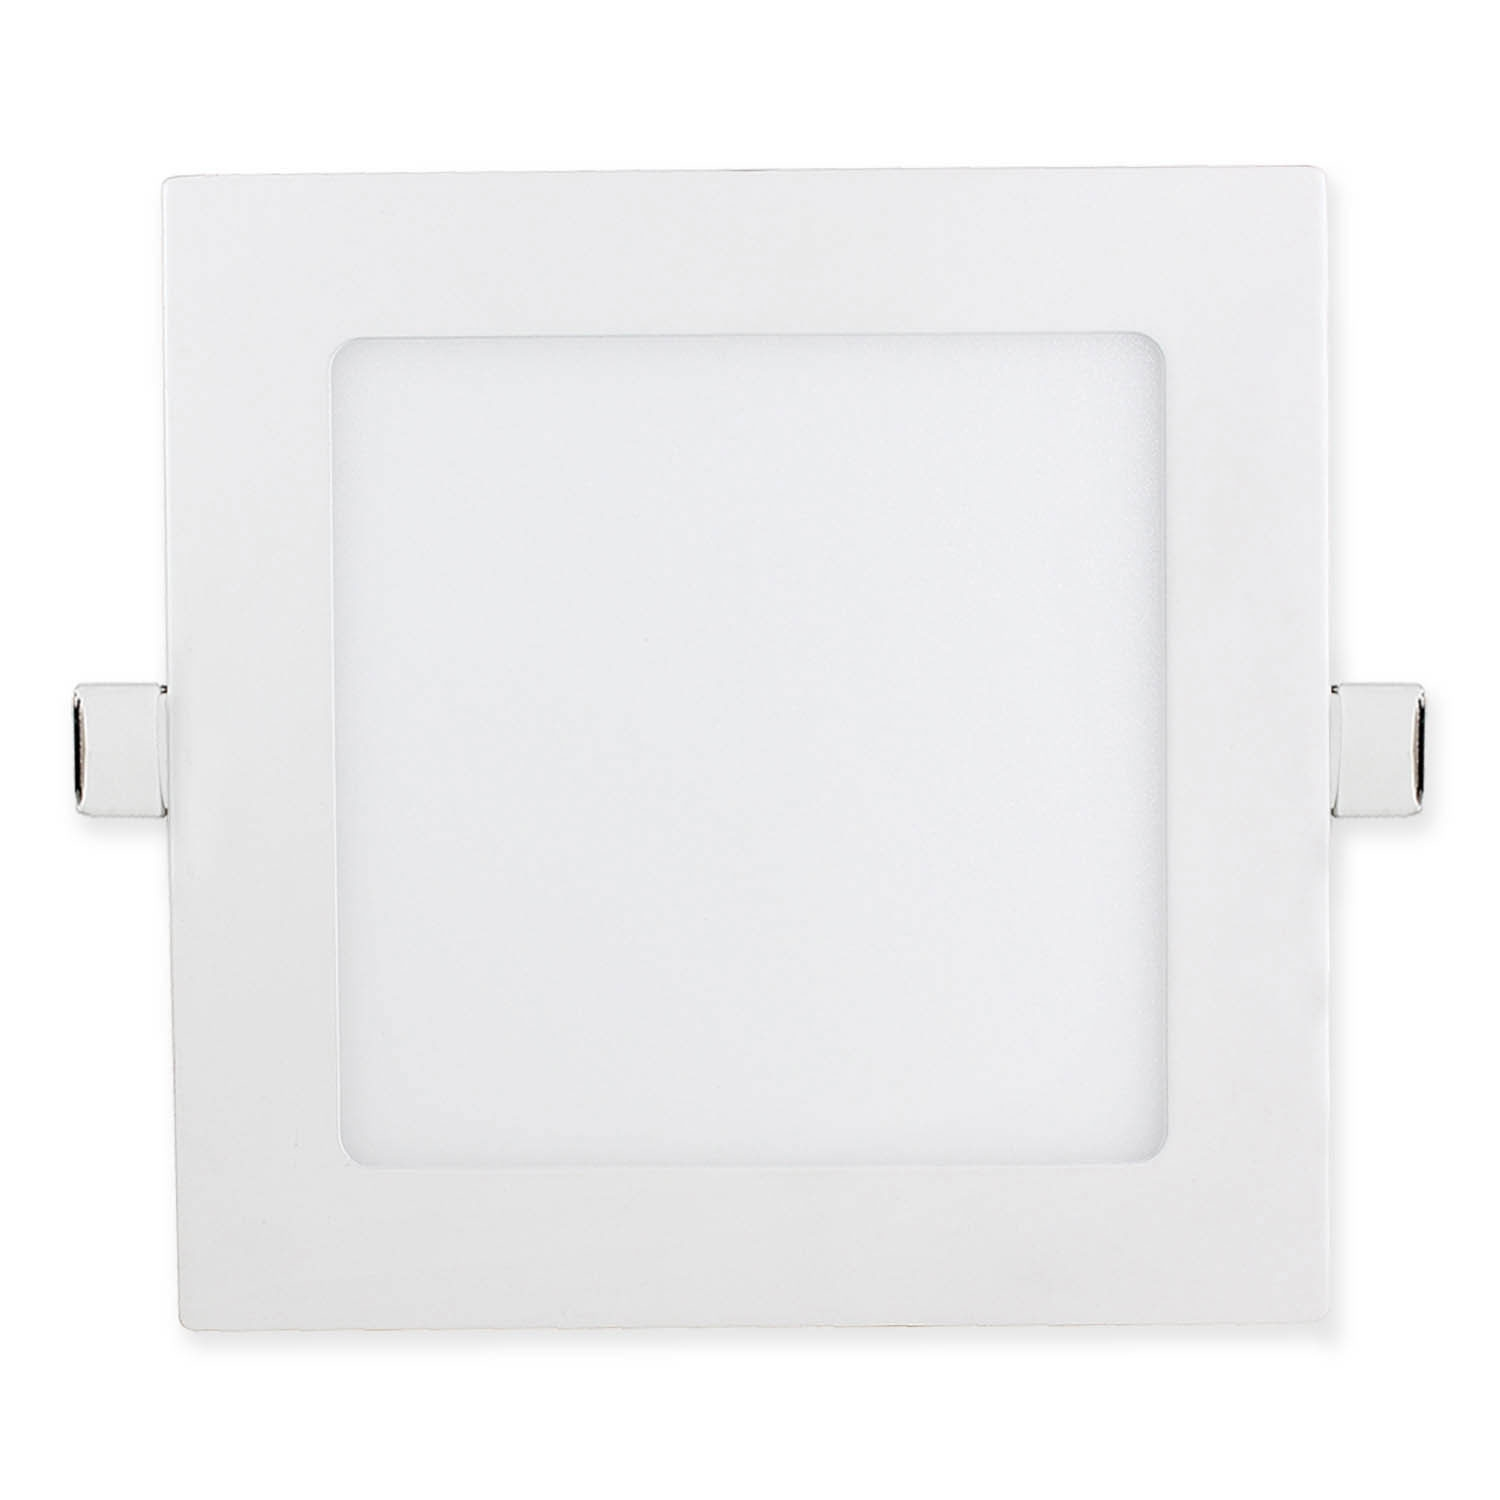 Luces Downlight Led Focos Downlight Led Cocina Finest Downlight Led With